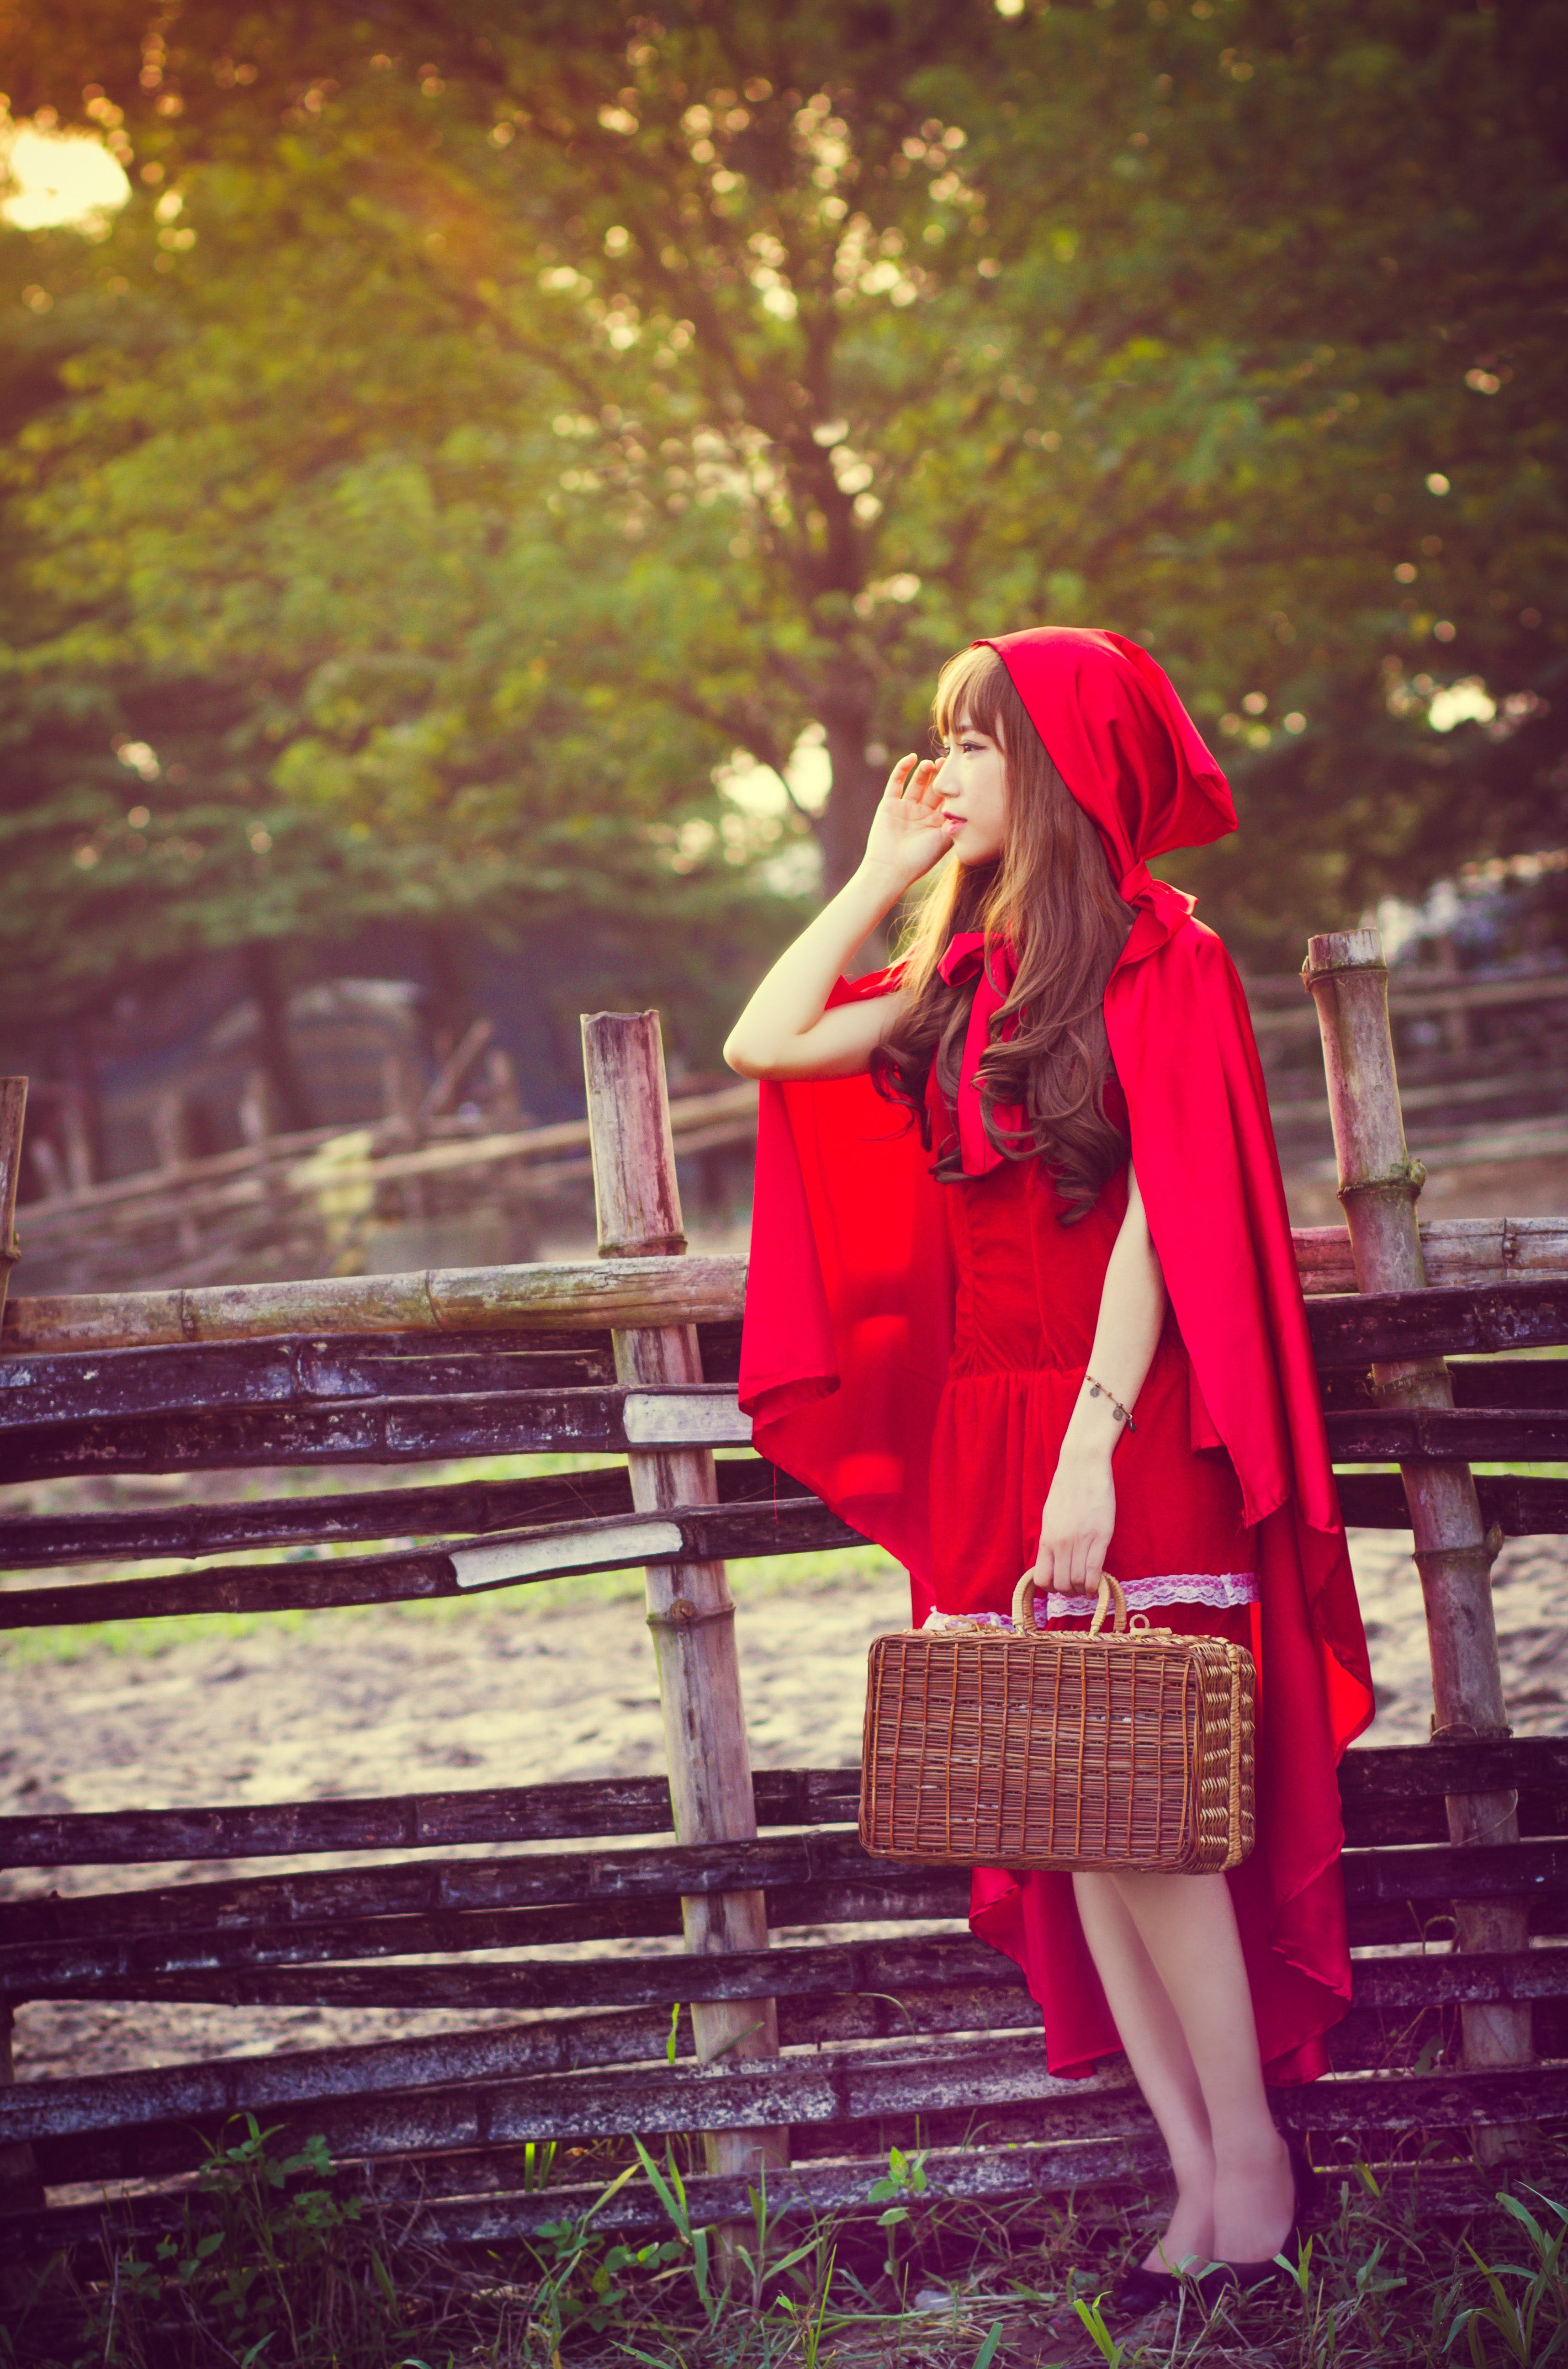 Woman Wearing Little Red Riding Hood Costume